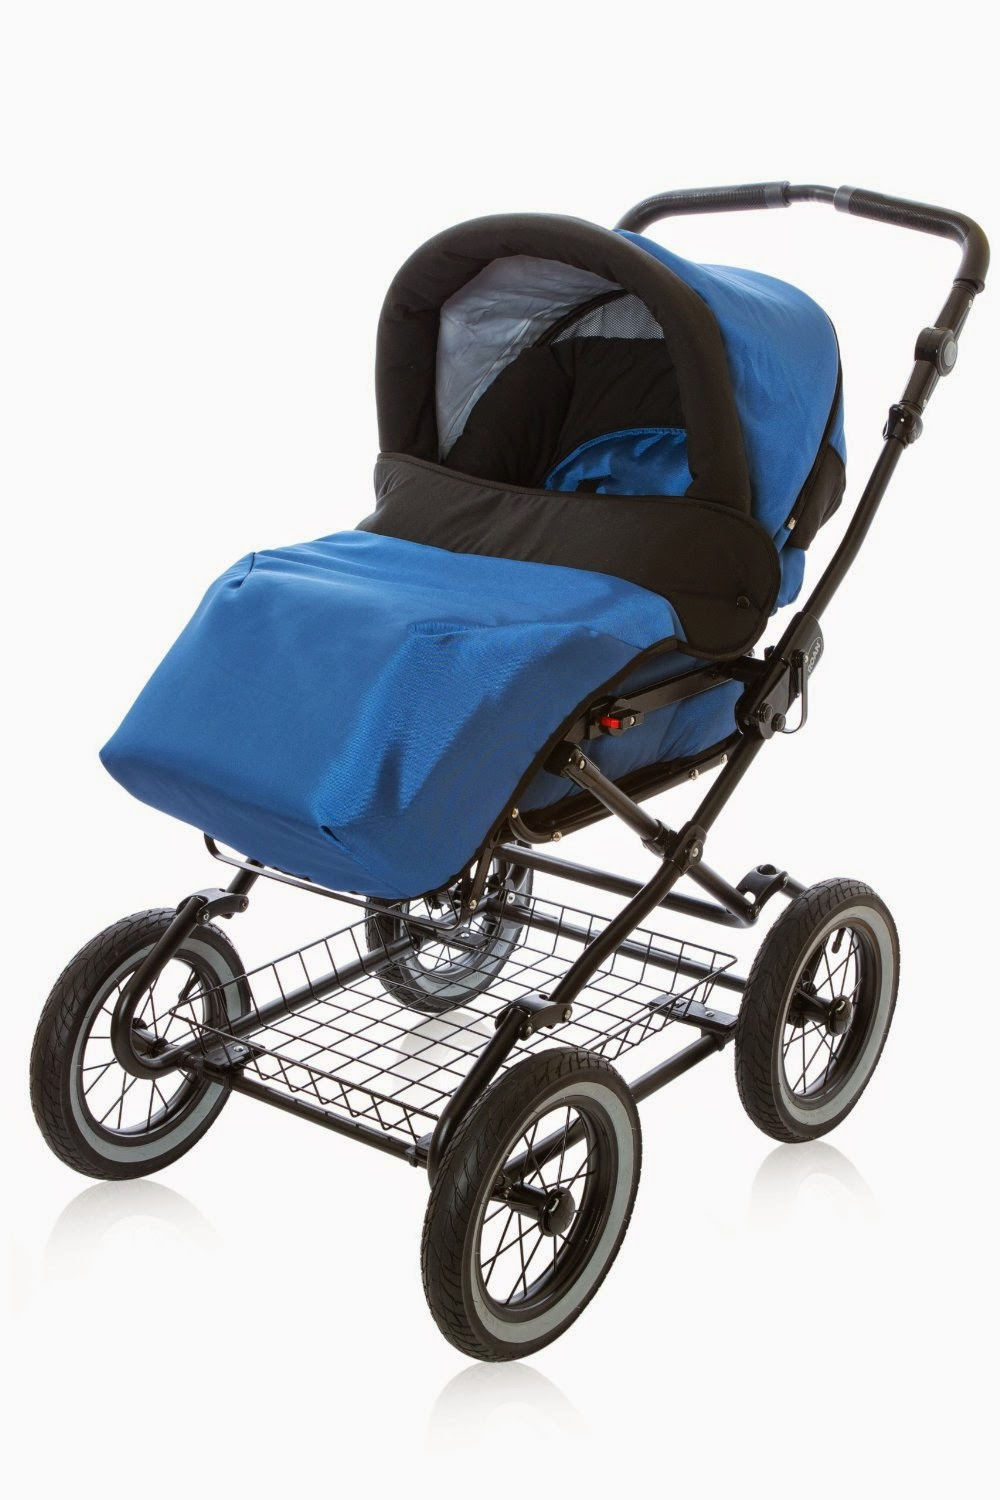 Sale: Roan Rocco Classic Pram Stroller 2-in-1 with Bassinet and Seat Unit Marine